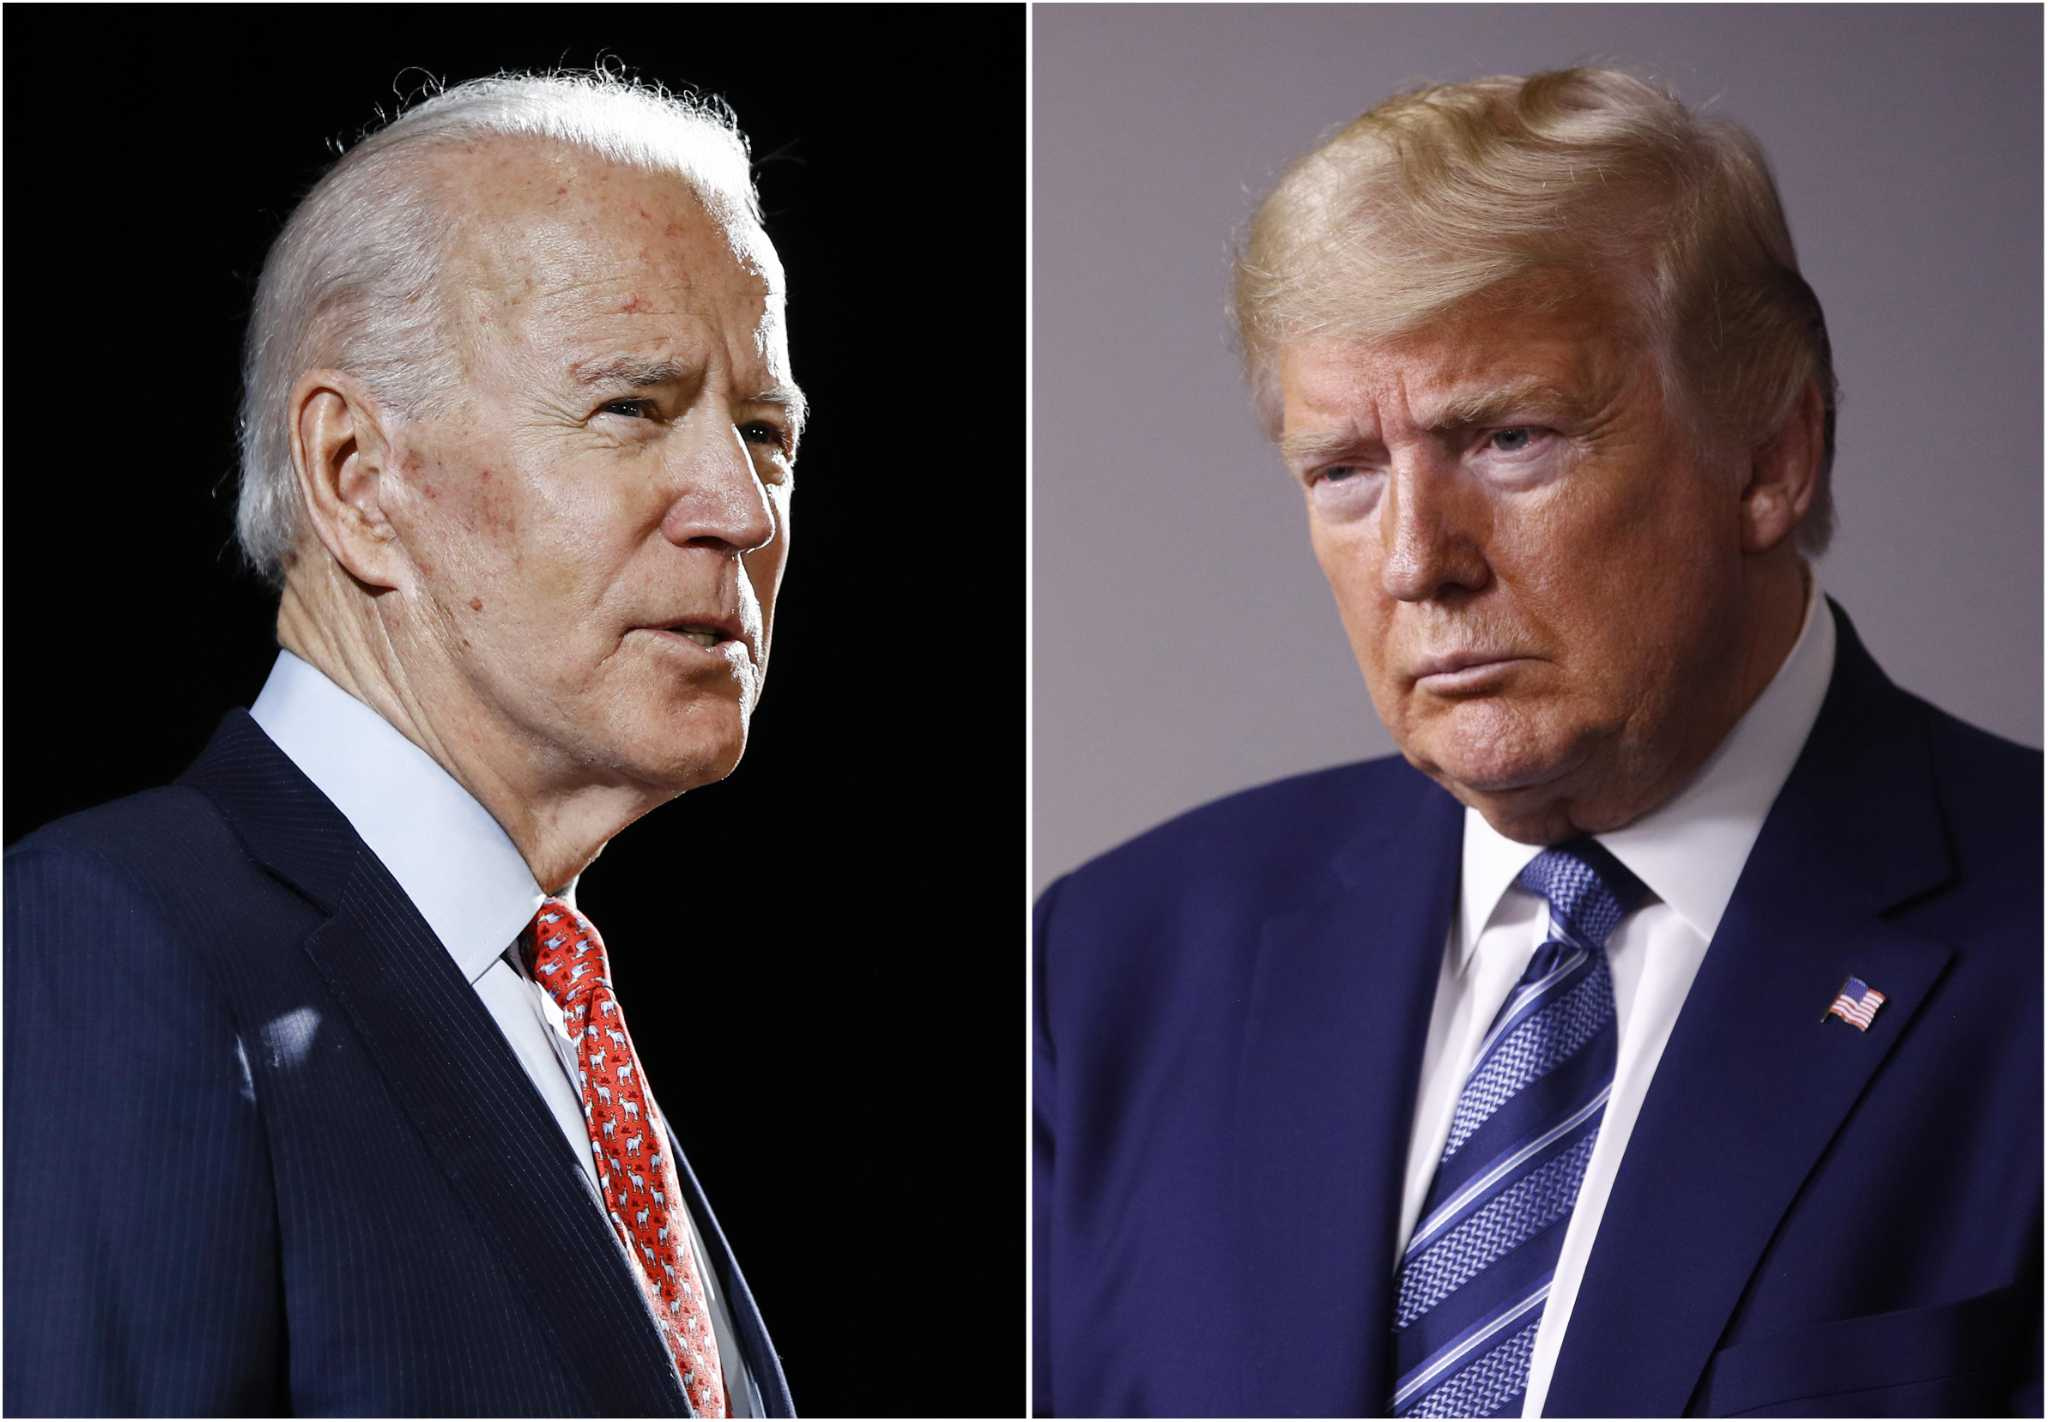 New poll shows tighter race between Trump and Biden in Texas